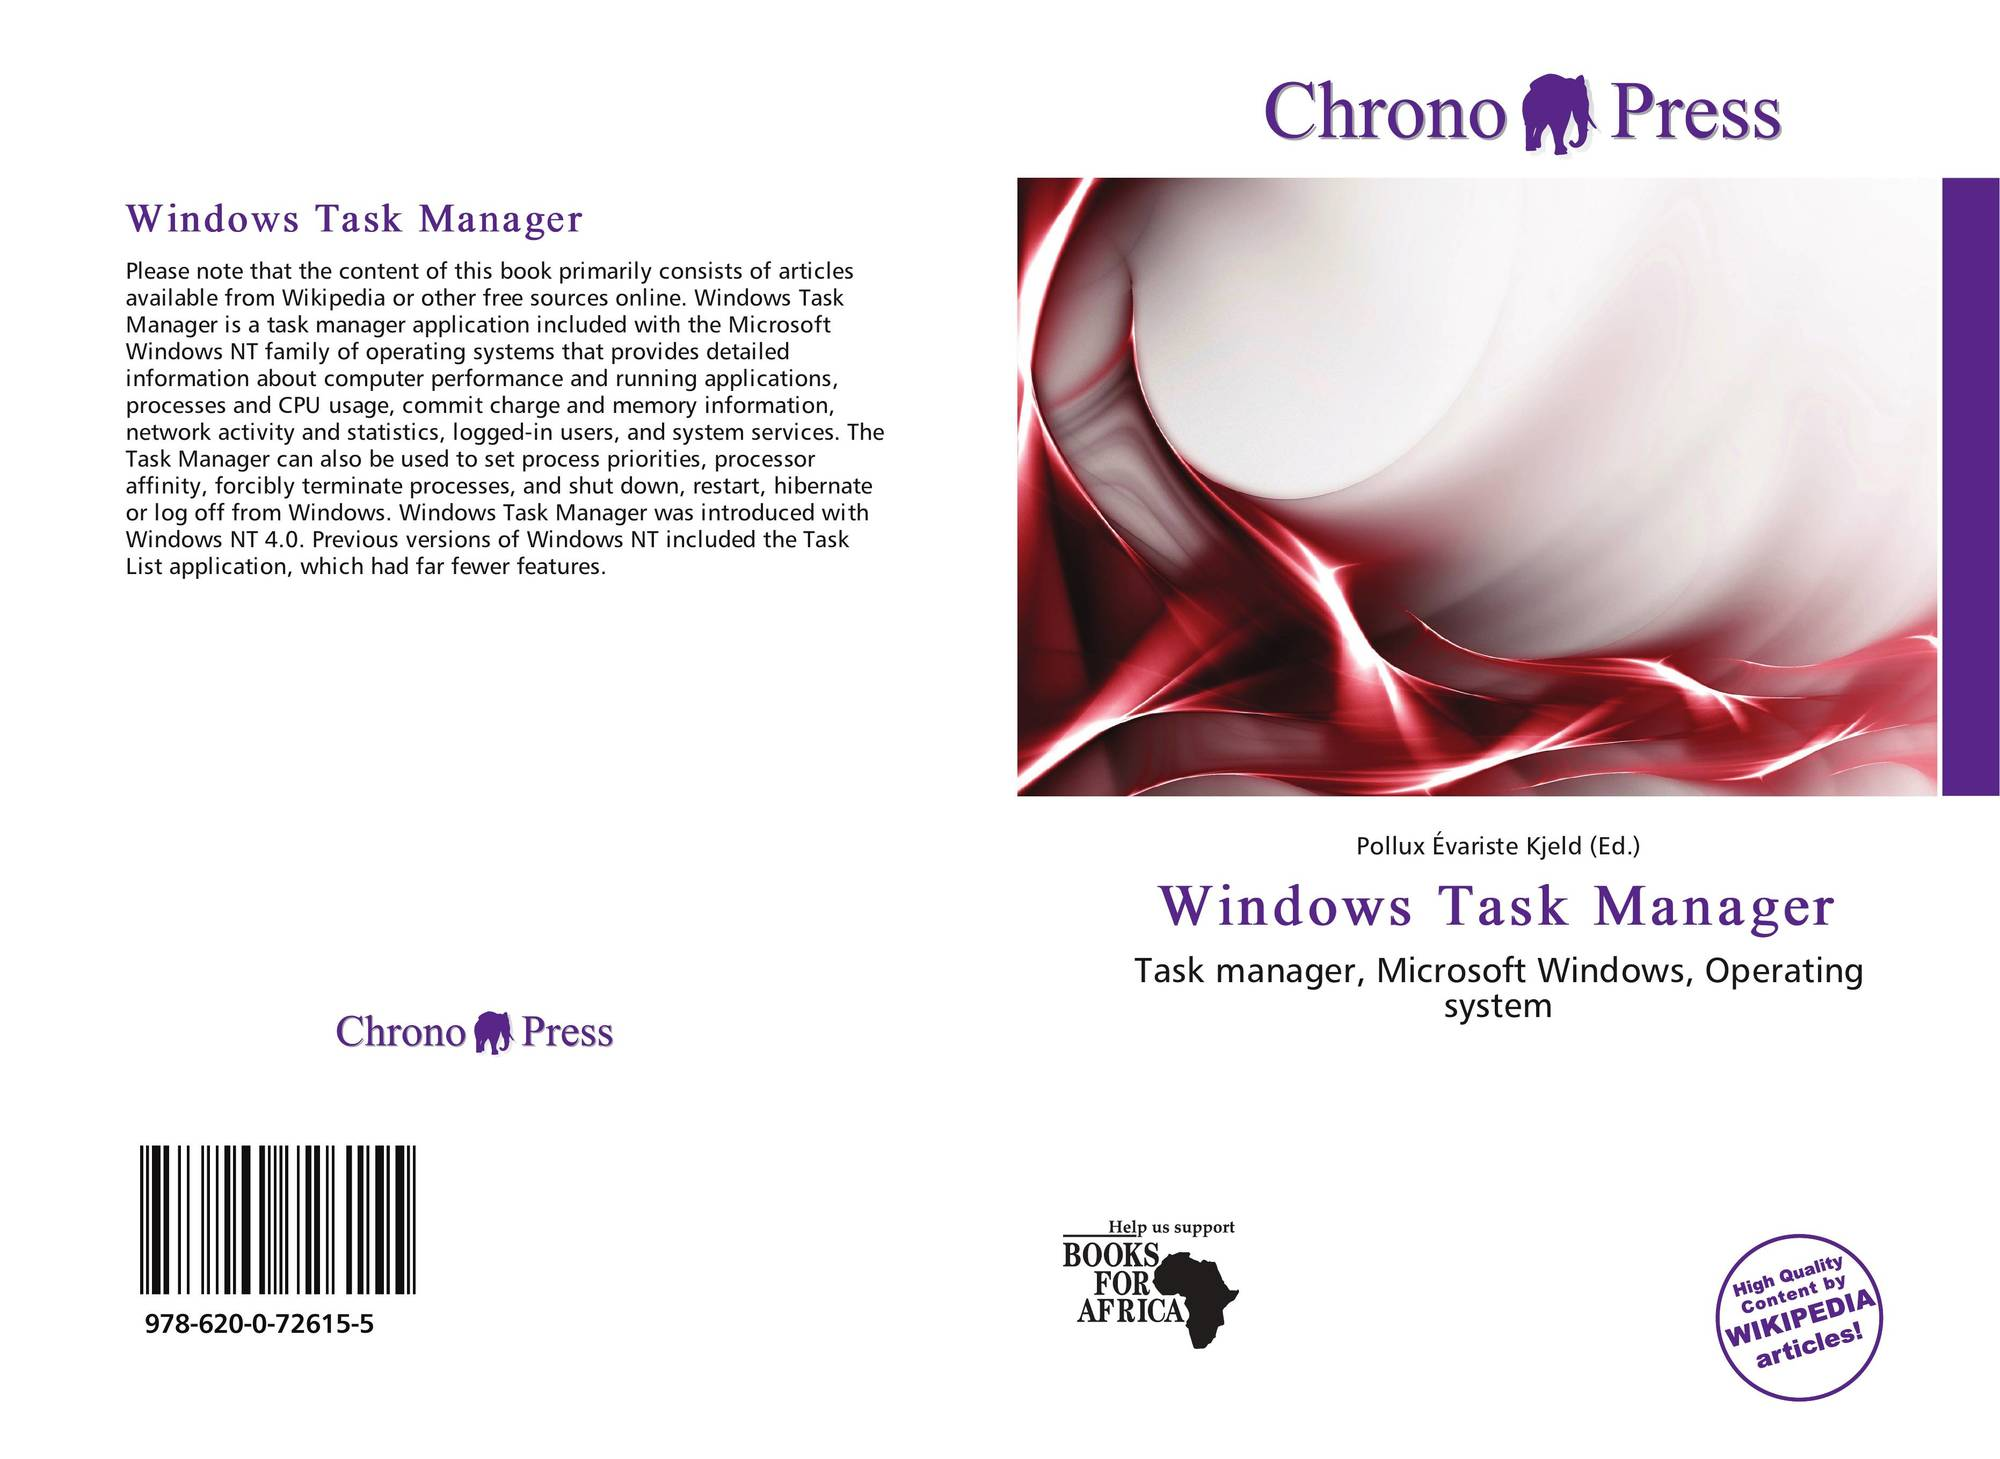 Windows Task Manager, 978-620-0-72615-5, 6200726159